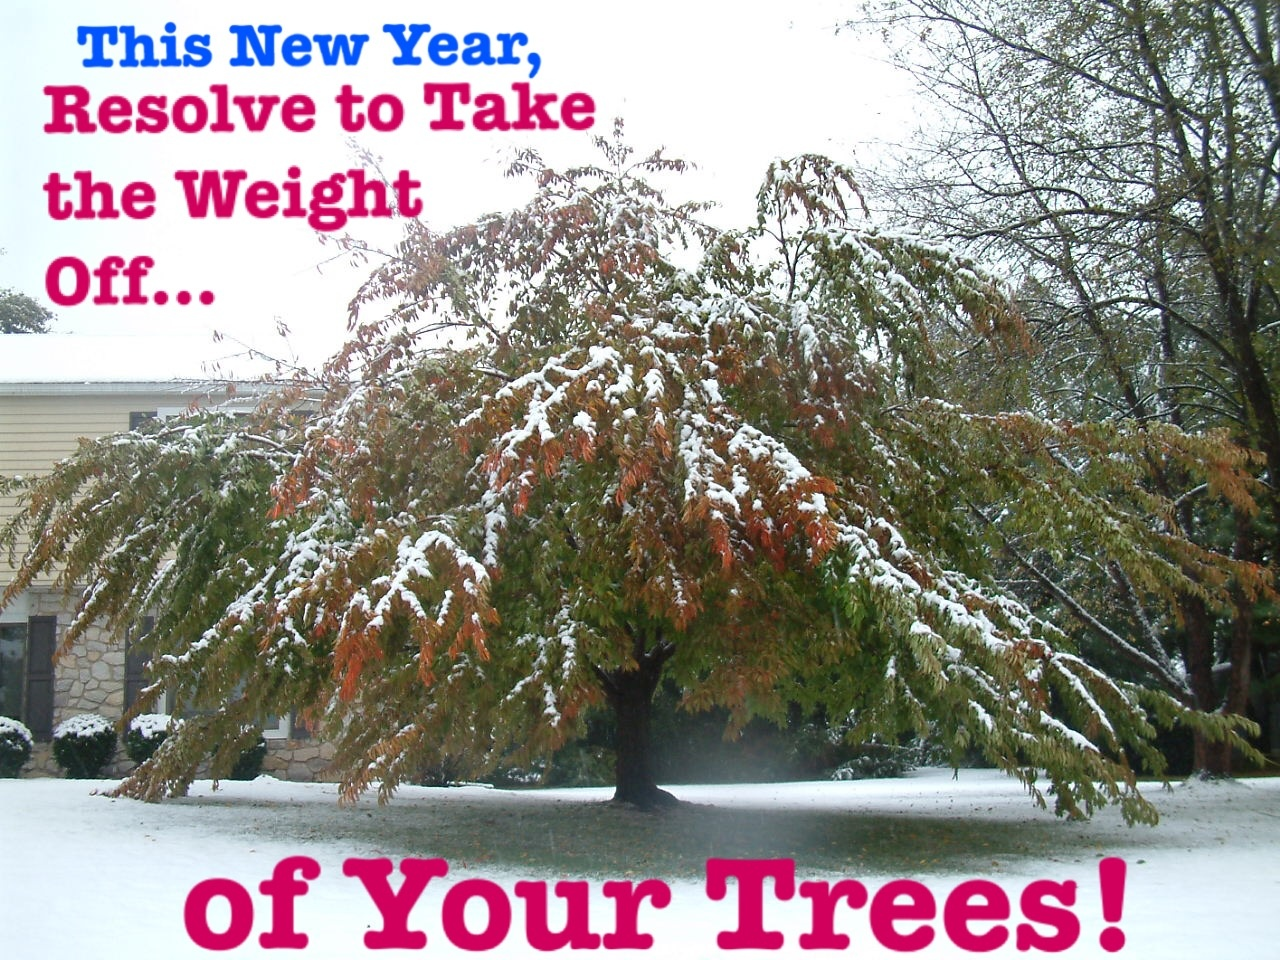 Resolve to Take The Weight Off of Your Trees Deadwood.jpg